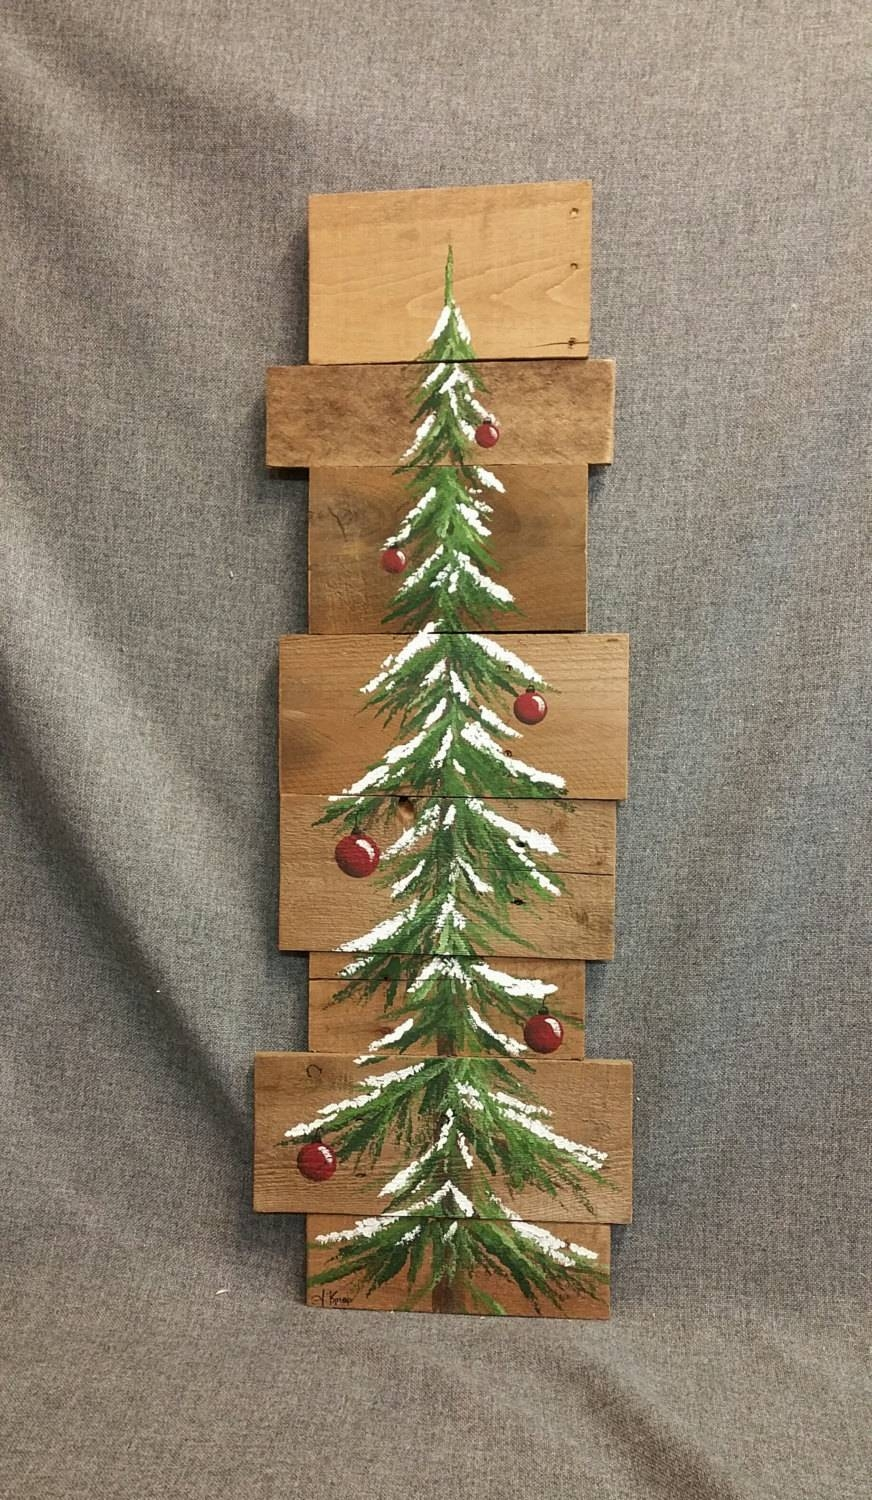 Christmas Tree Red Bulbs Pine Tree Reclaimed Wood Pallet Within Most Recent Pine Tree Wall Art (View 28 of 30)